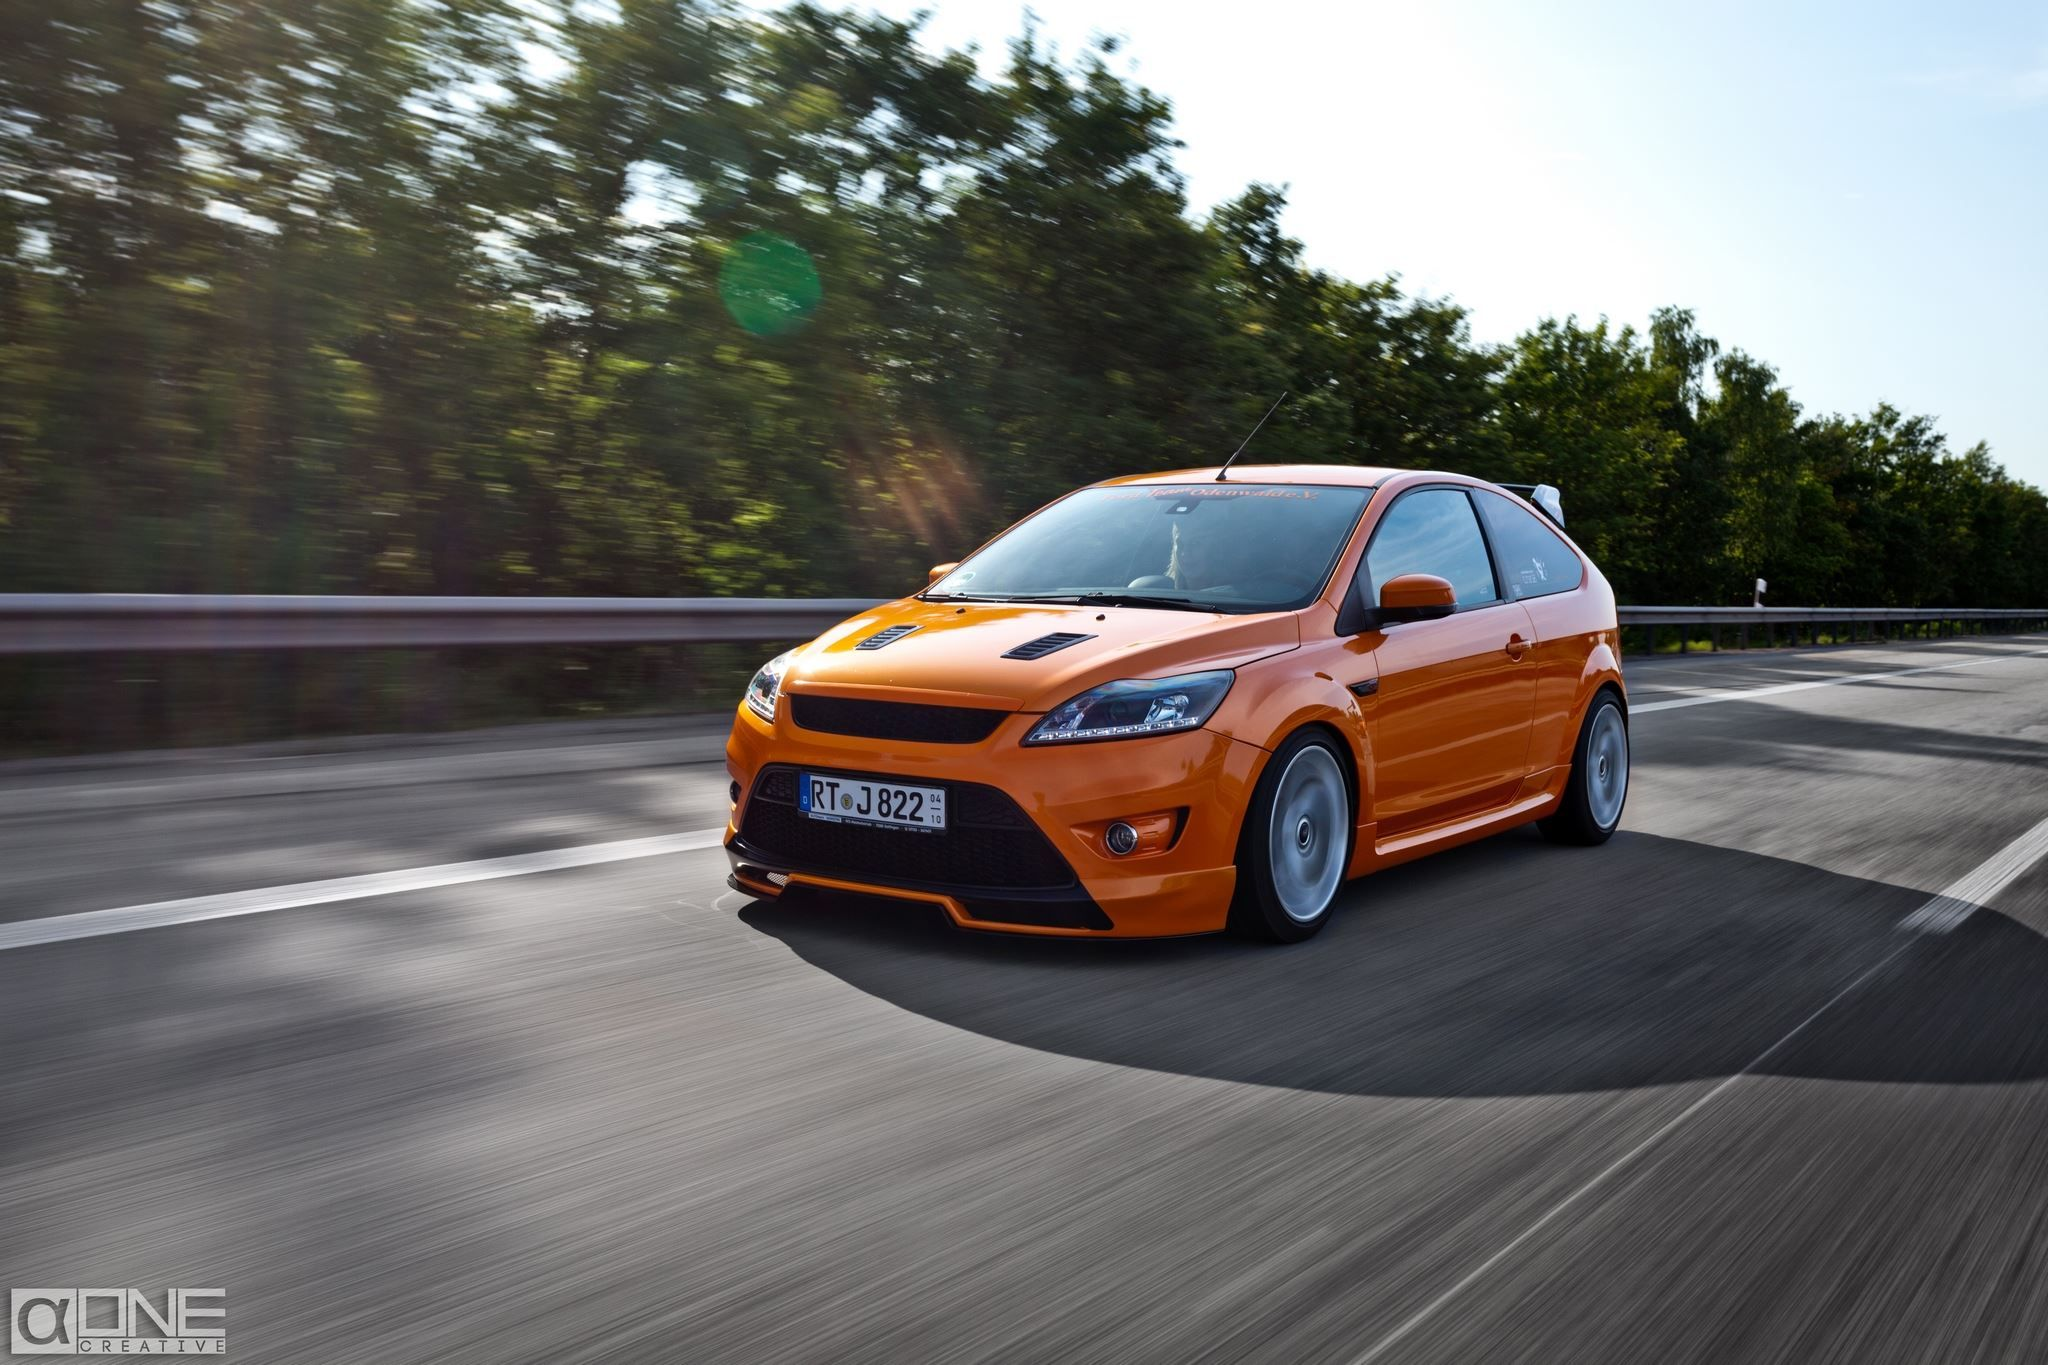 ford focus st electric orange mk2 ford focus st tuning pinterest ford focus ford and cars. Black Bedroom Furniture Sets. Home Design Ideas